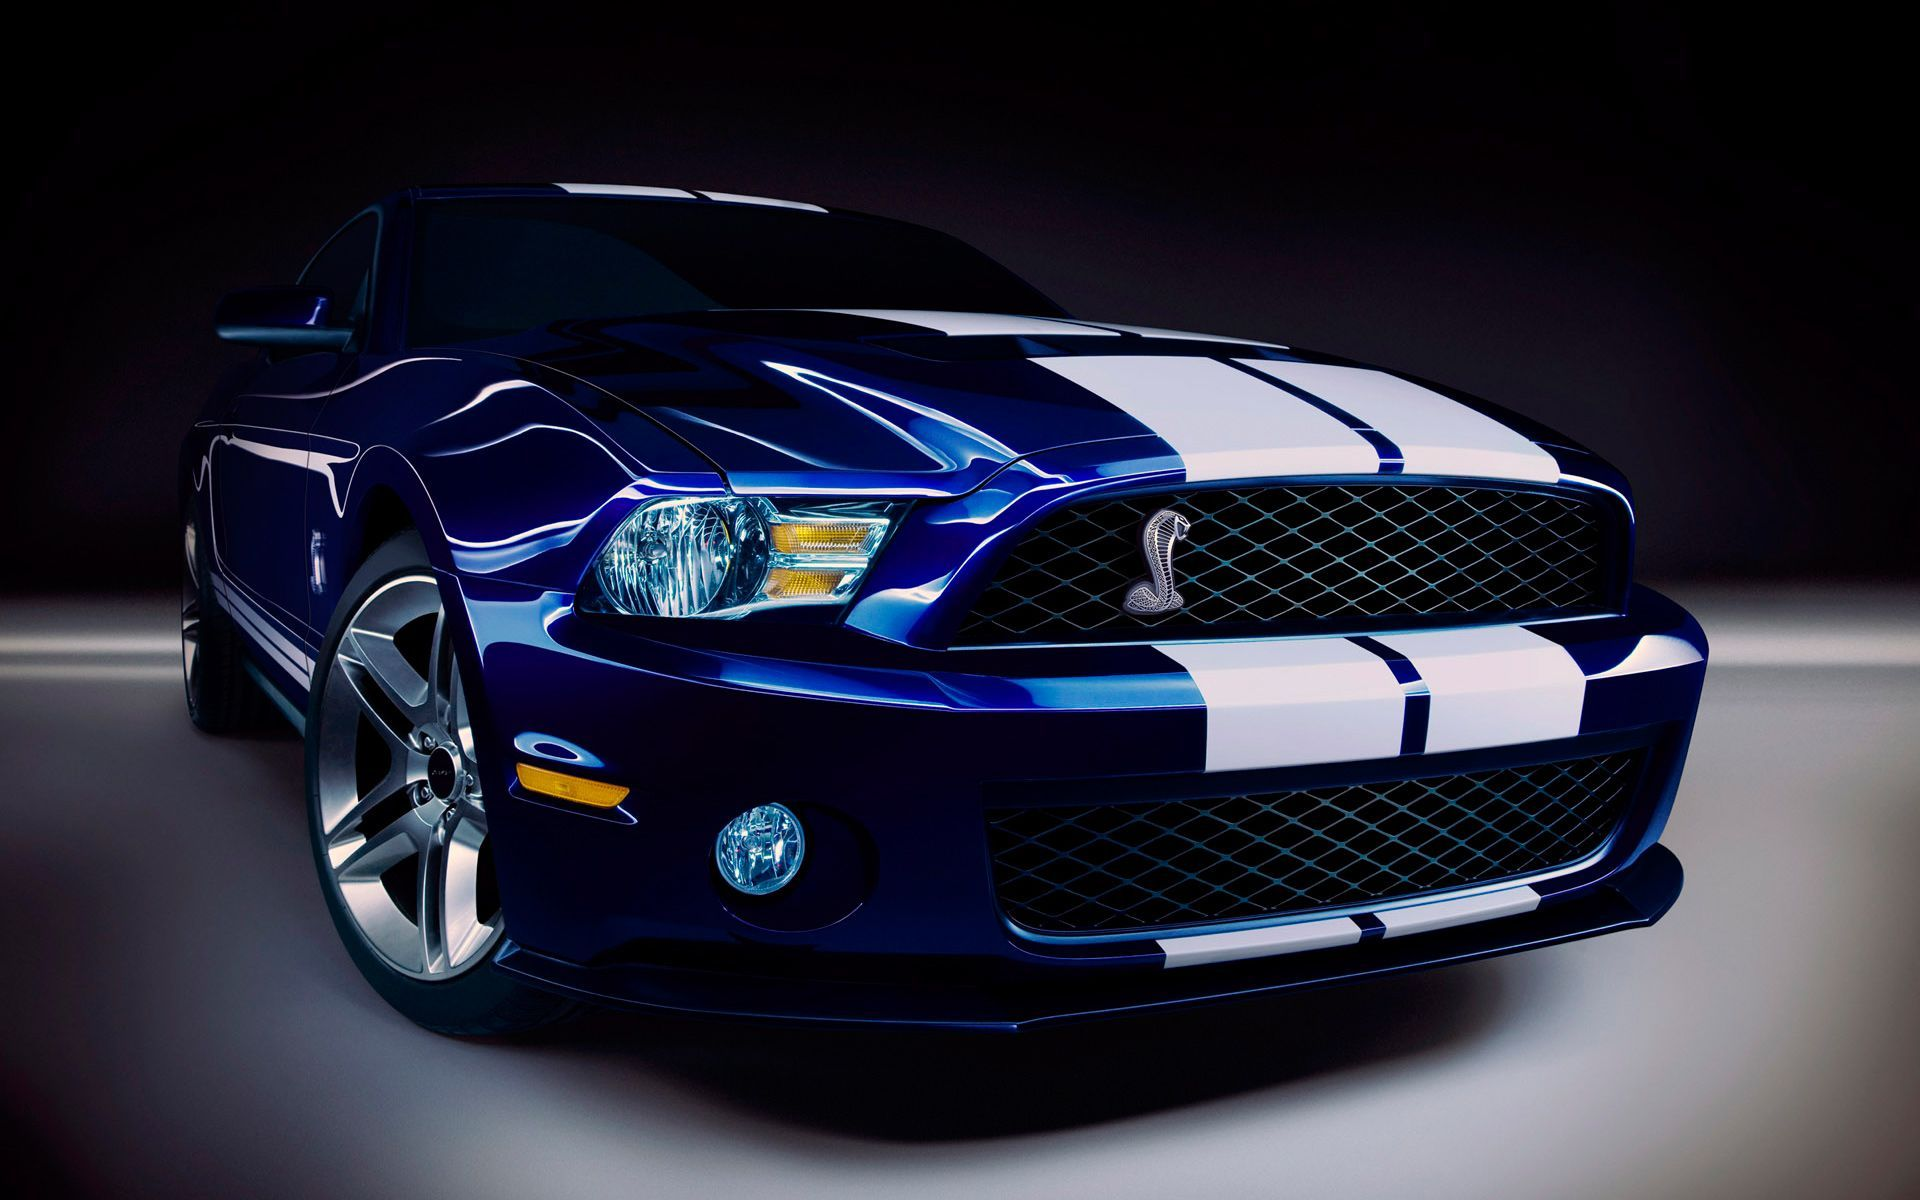 Hd Wallpapers Widescreen 1080p 3d Ford Shelby Gt500 Wallpapers Hd Wallpapers Ford Shelby Gt 500 Ford Mustang Car Shelby Gt